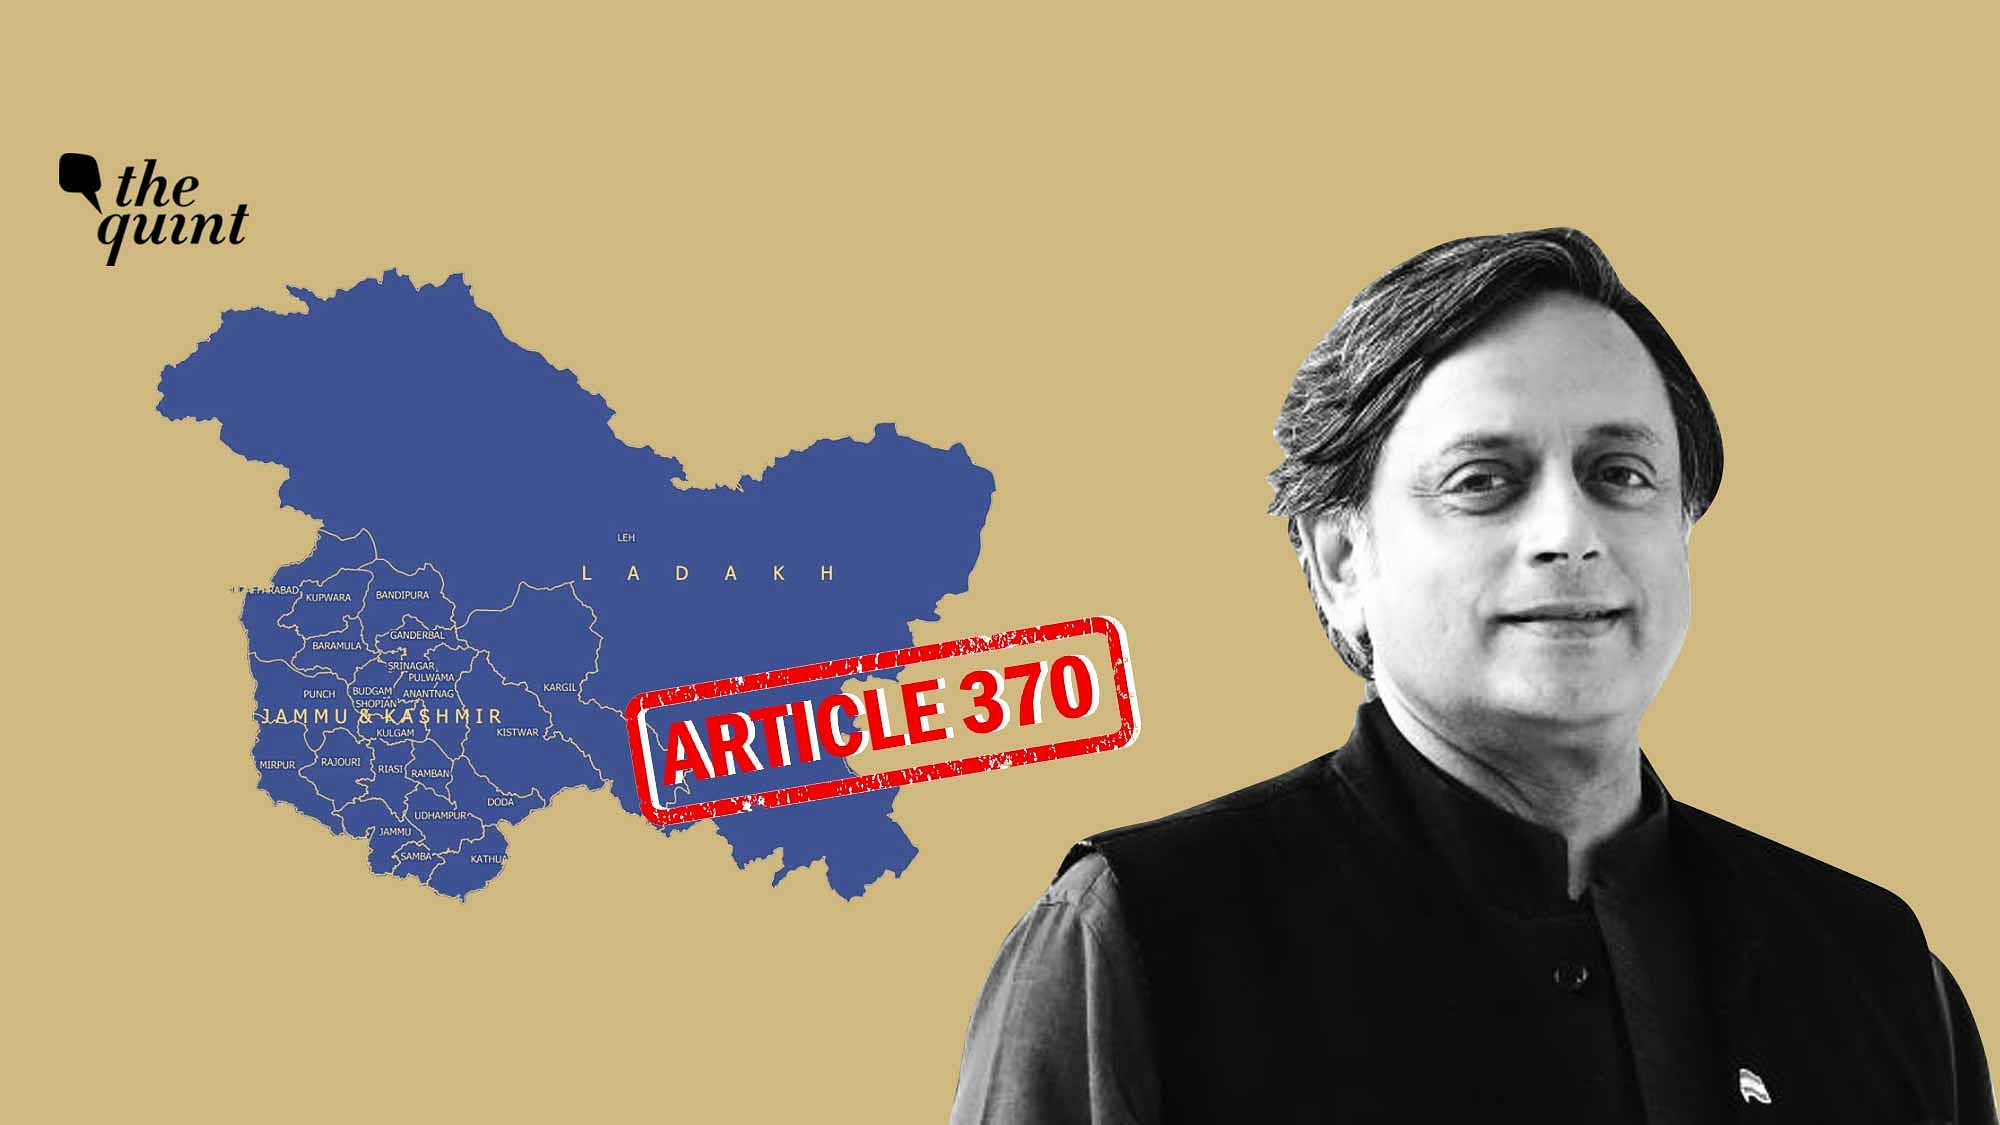 One Year Of Kashmir After Article 370 With Local Politicians Jailed Terrorism In Kashmir Has Got A New Lease Of Life Opinion By Shashi Tharoor